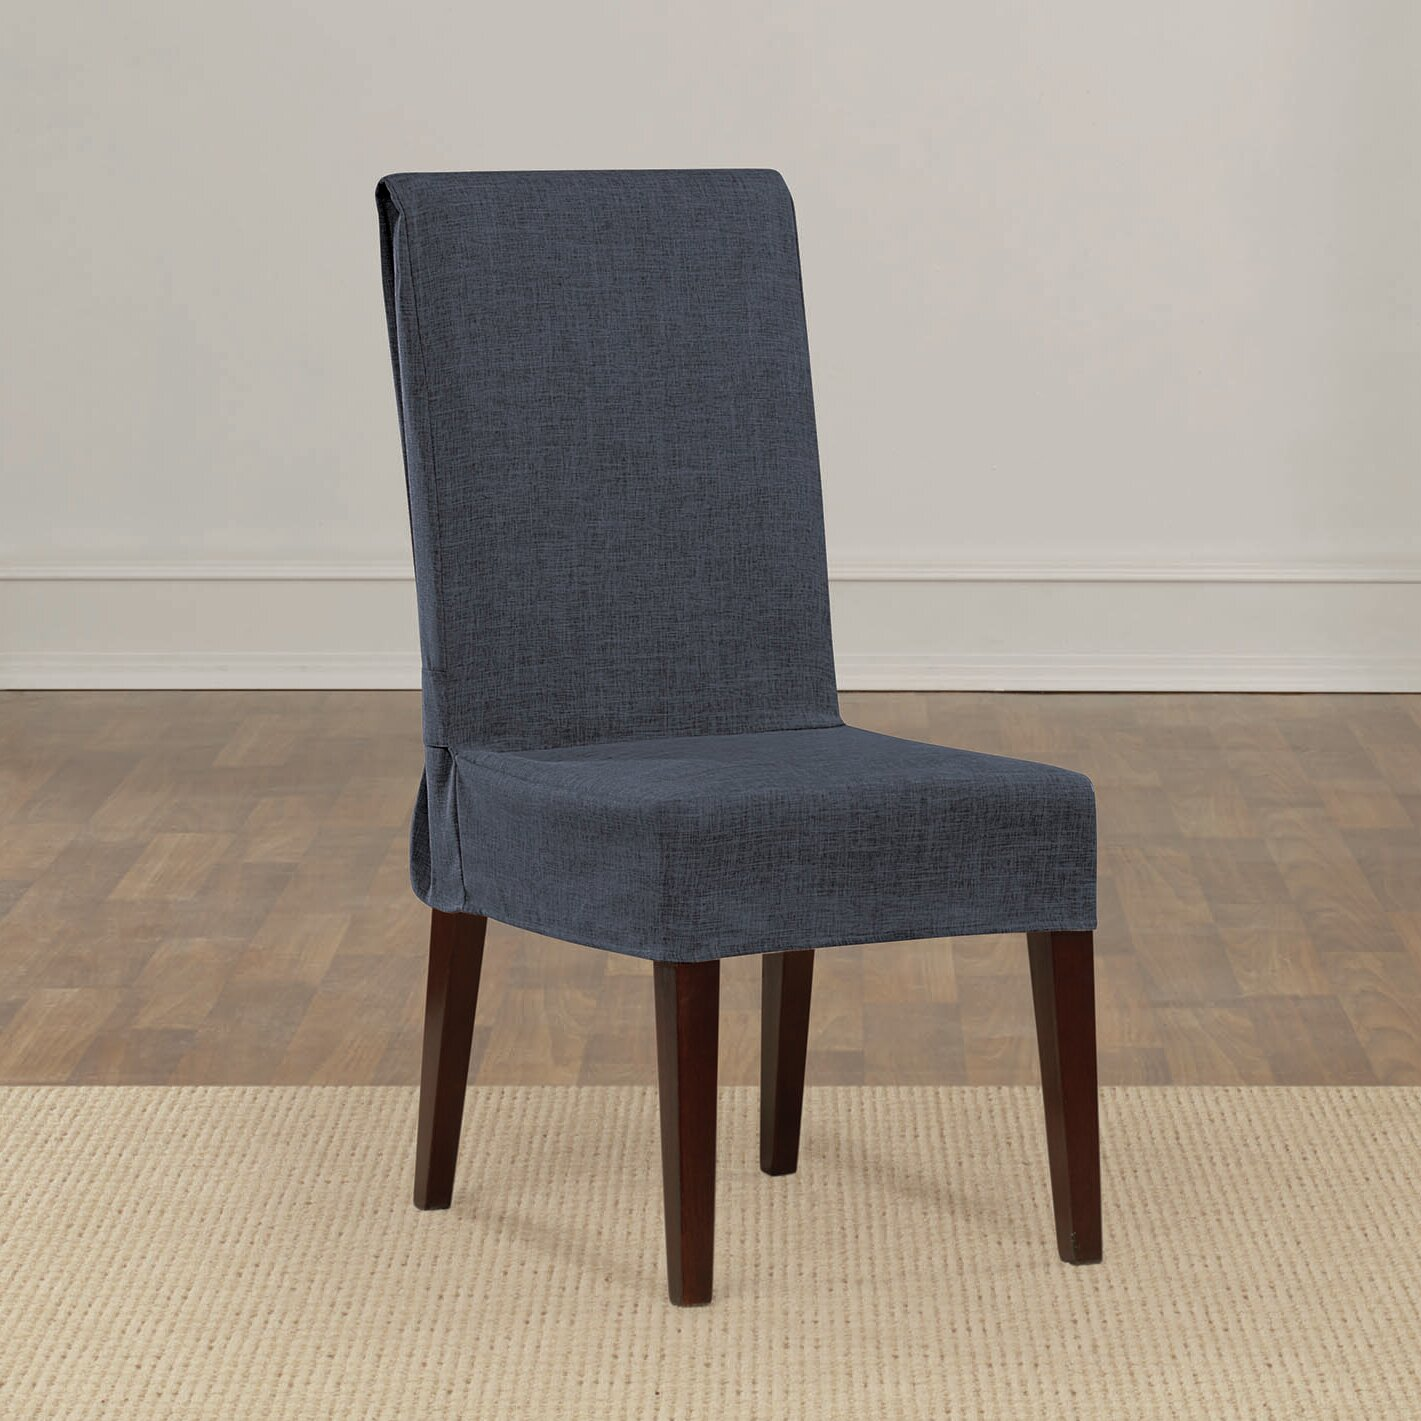 Slip Covers For Dining Room Chairs: Shorty Dining Chair Slipcover